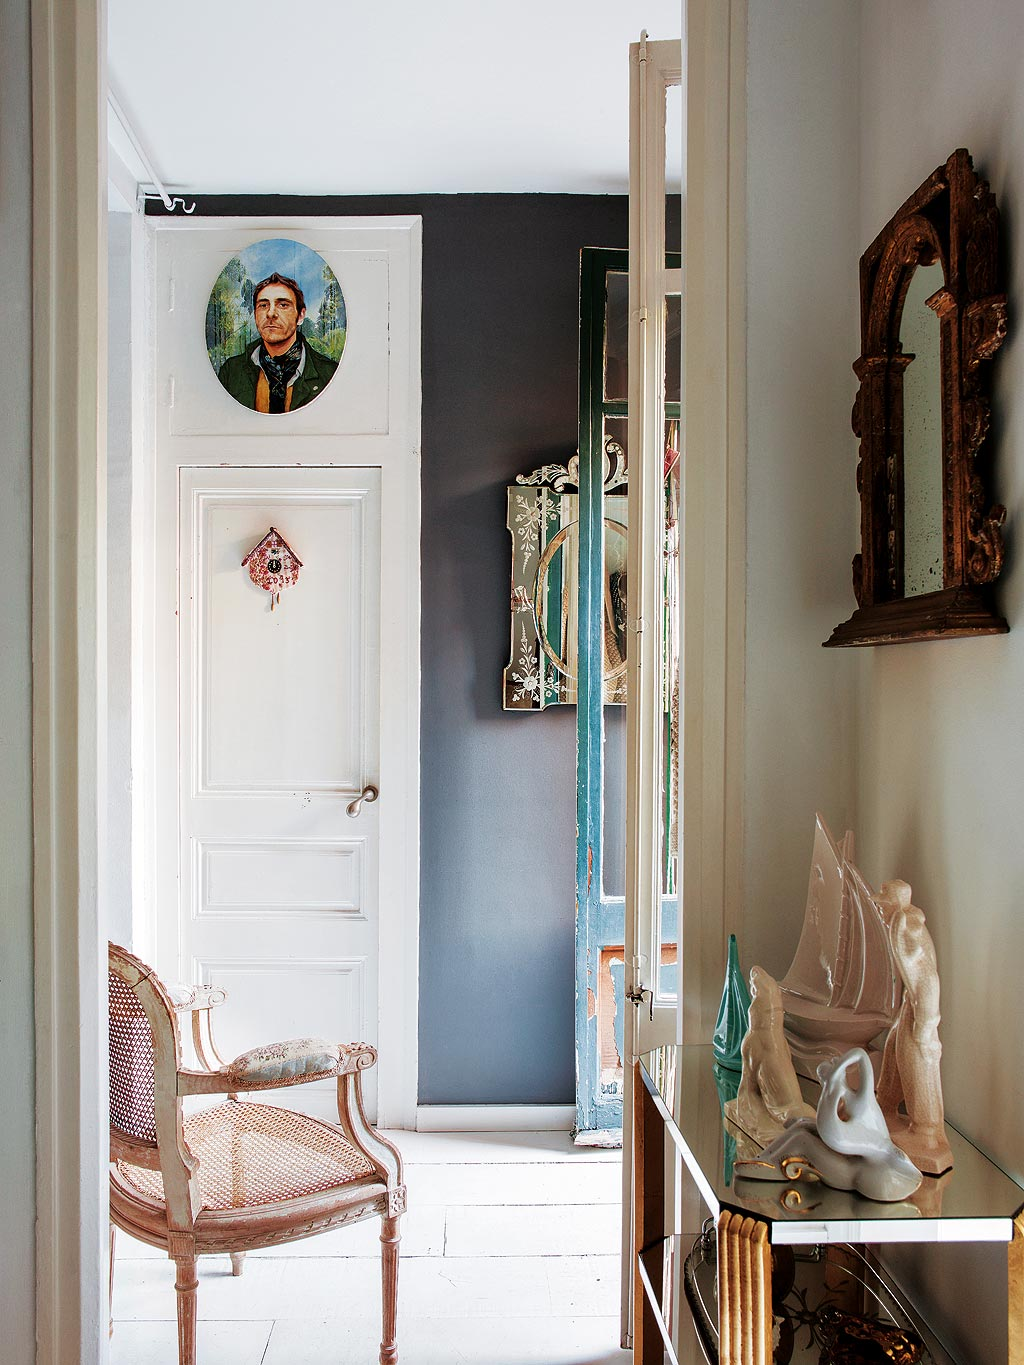 Small Mirror Hallway Inspiration Black Paint Walls French Provincial Style Doors Moulding Renovation Decorating With Mirrors